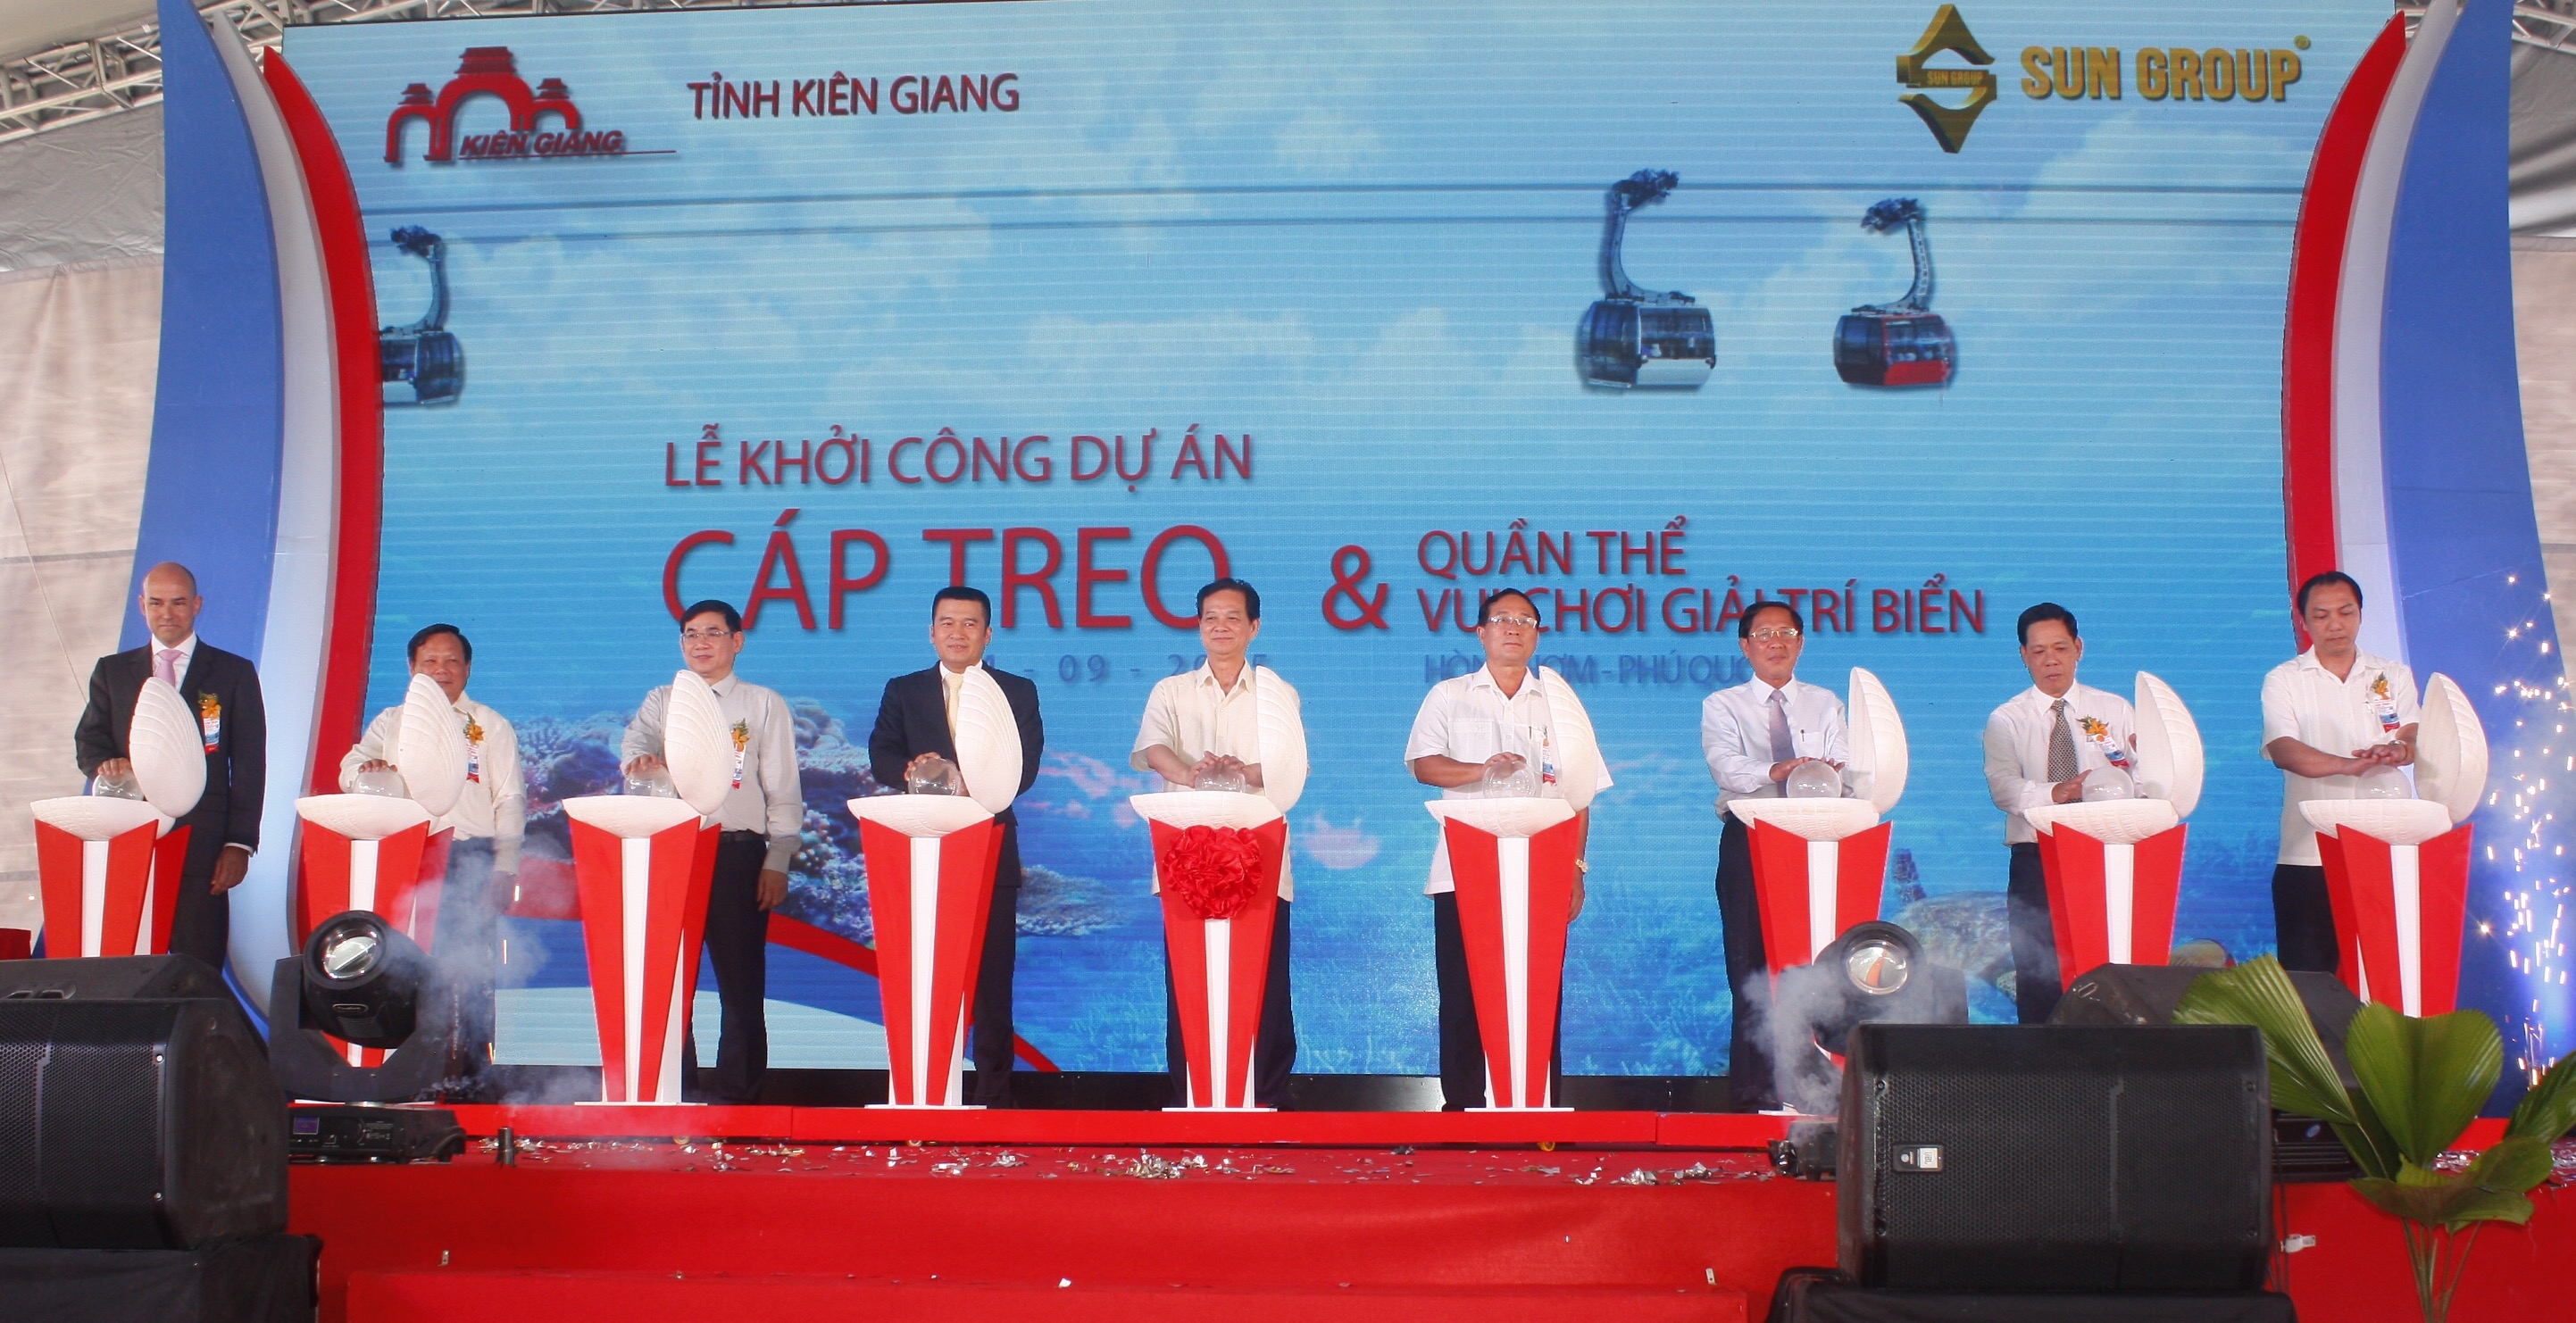 Work starts for cable car, electric transmission systems off southern Vietnam